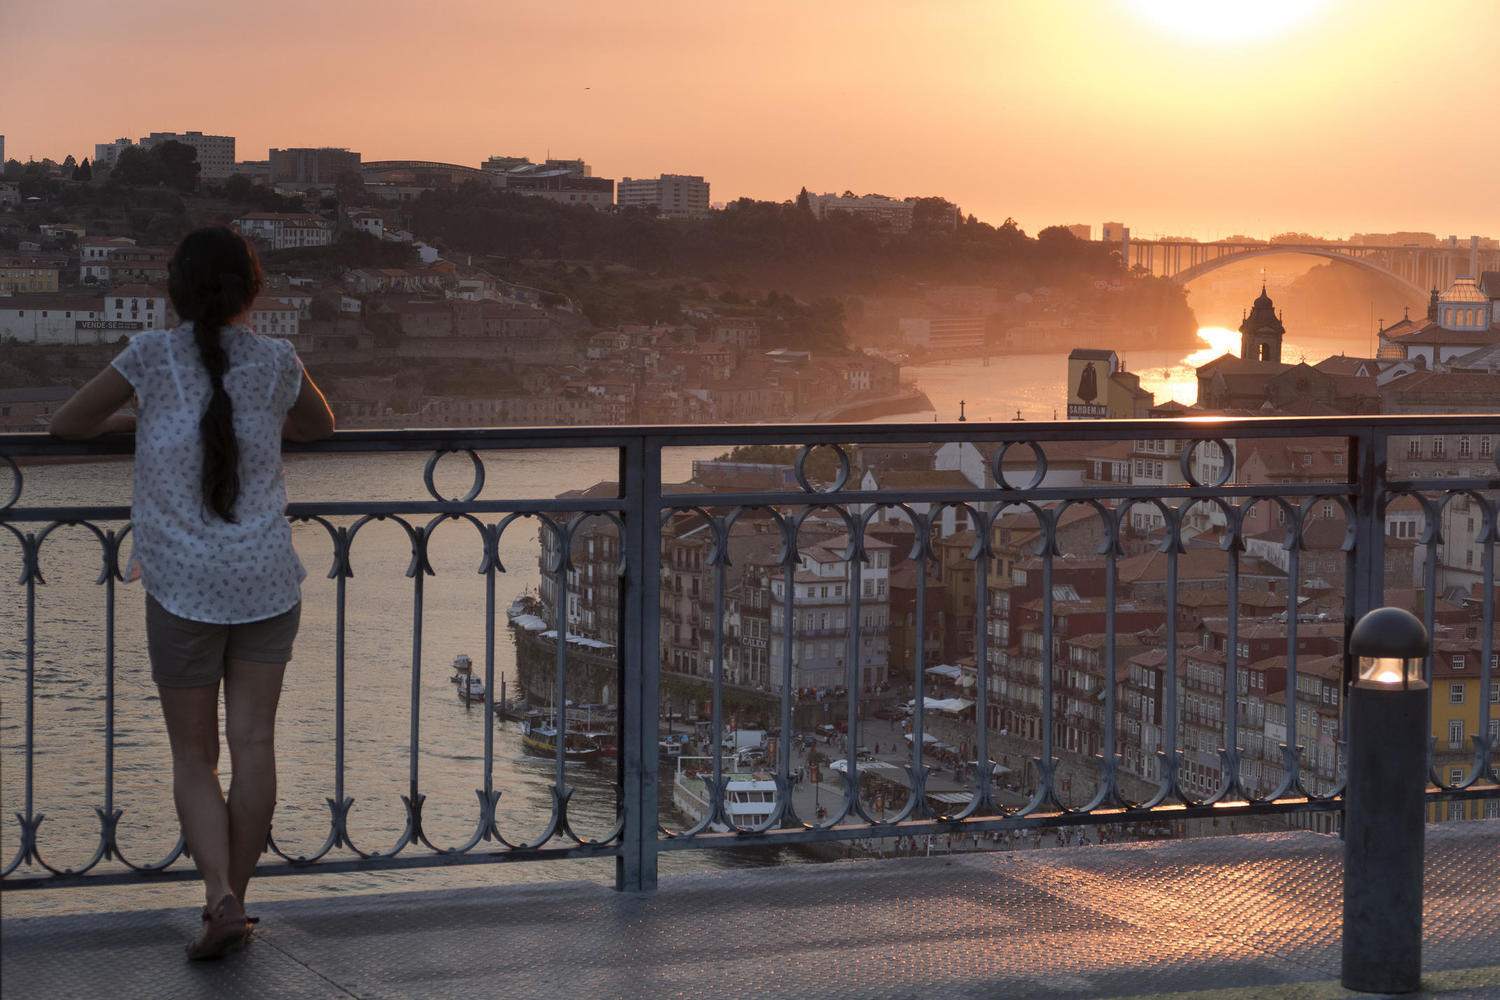 Porto often has wonderful sunsets to enjoy by the river